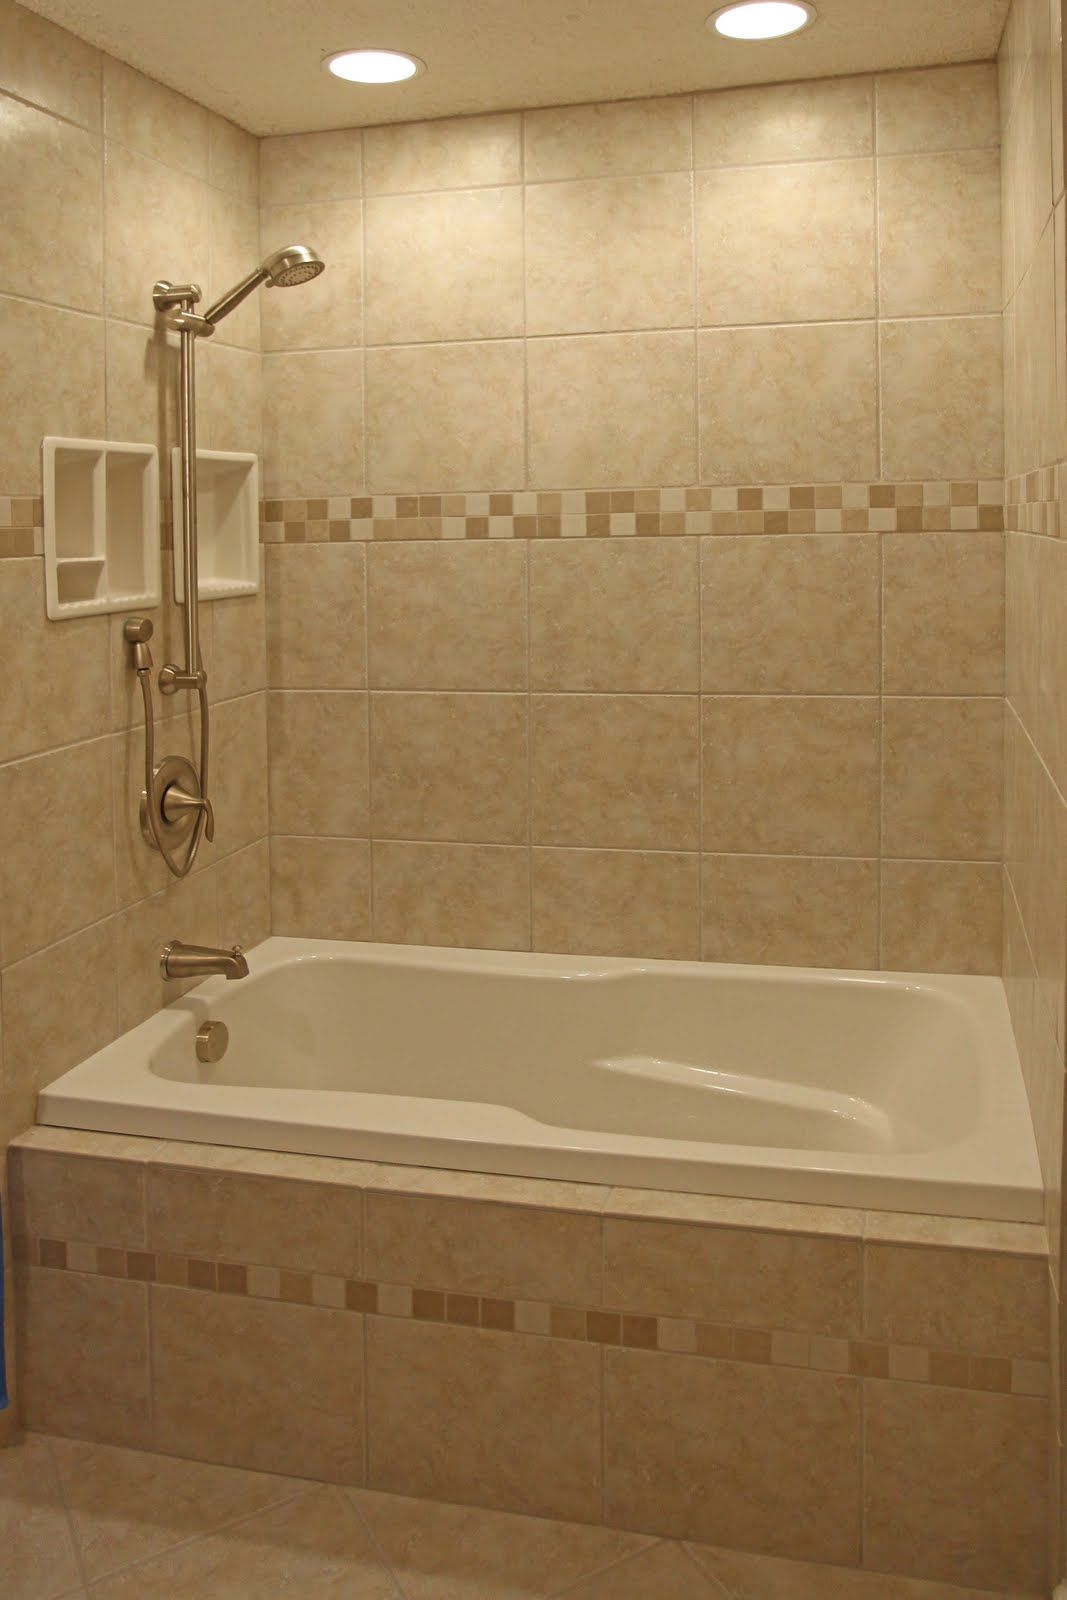 Best Kitchen Gallery: Shower And Bath Remodel Bathroom Shower Design Ideas » Ceramic of Small Bathroom Floor Tile Design Ideas  on rachelxblog.com